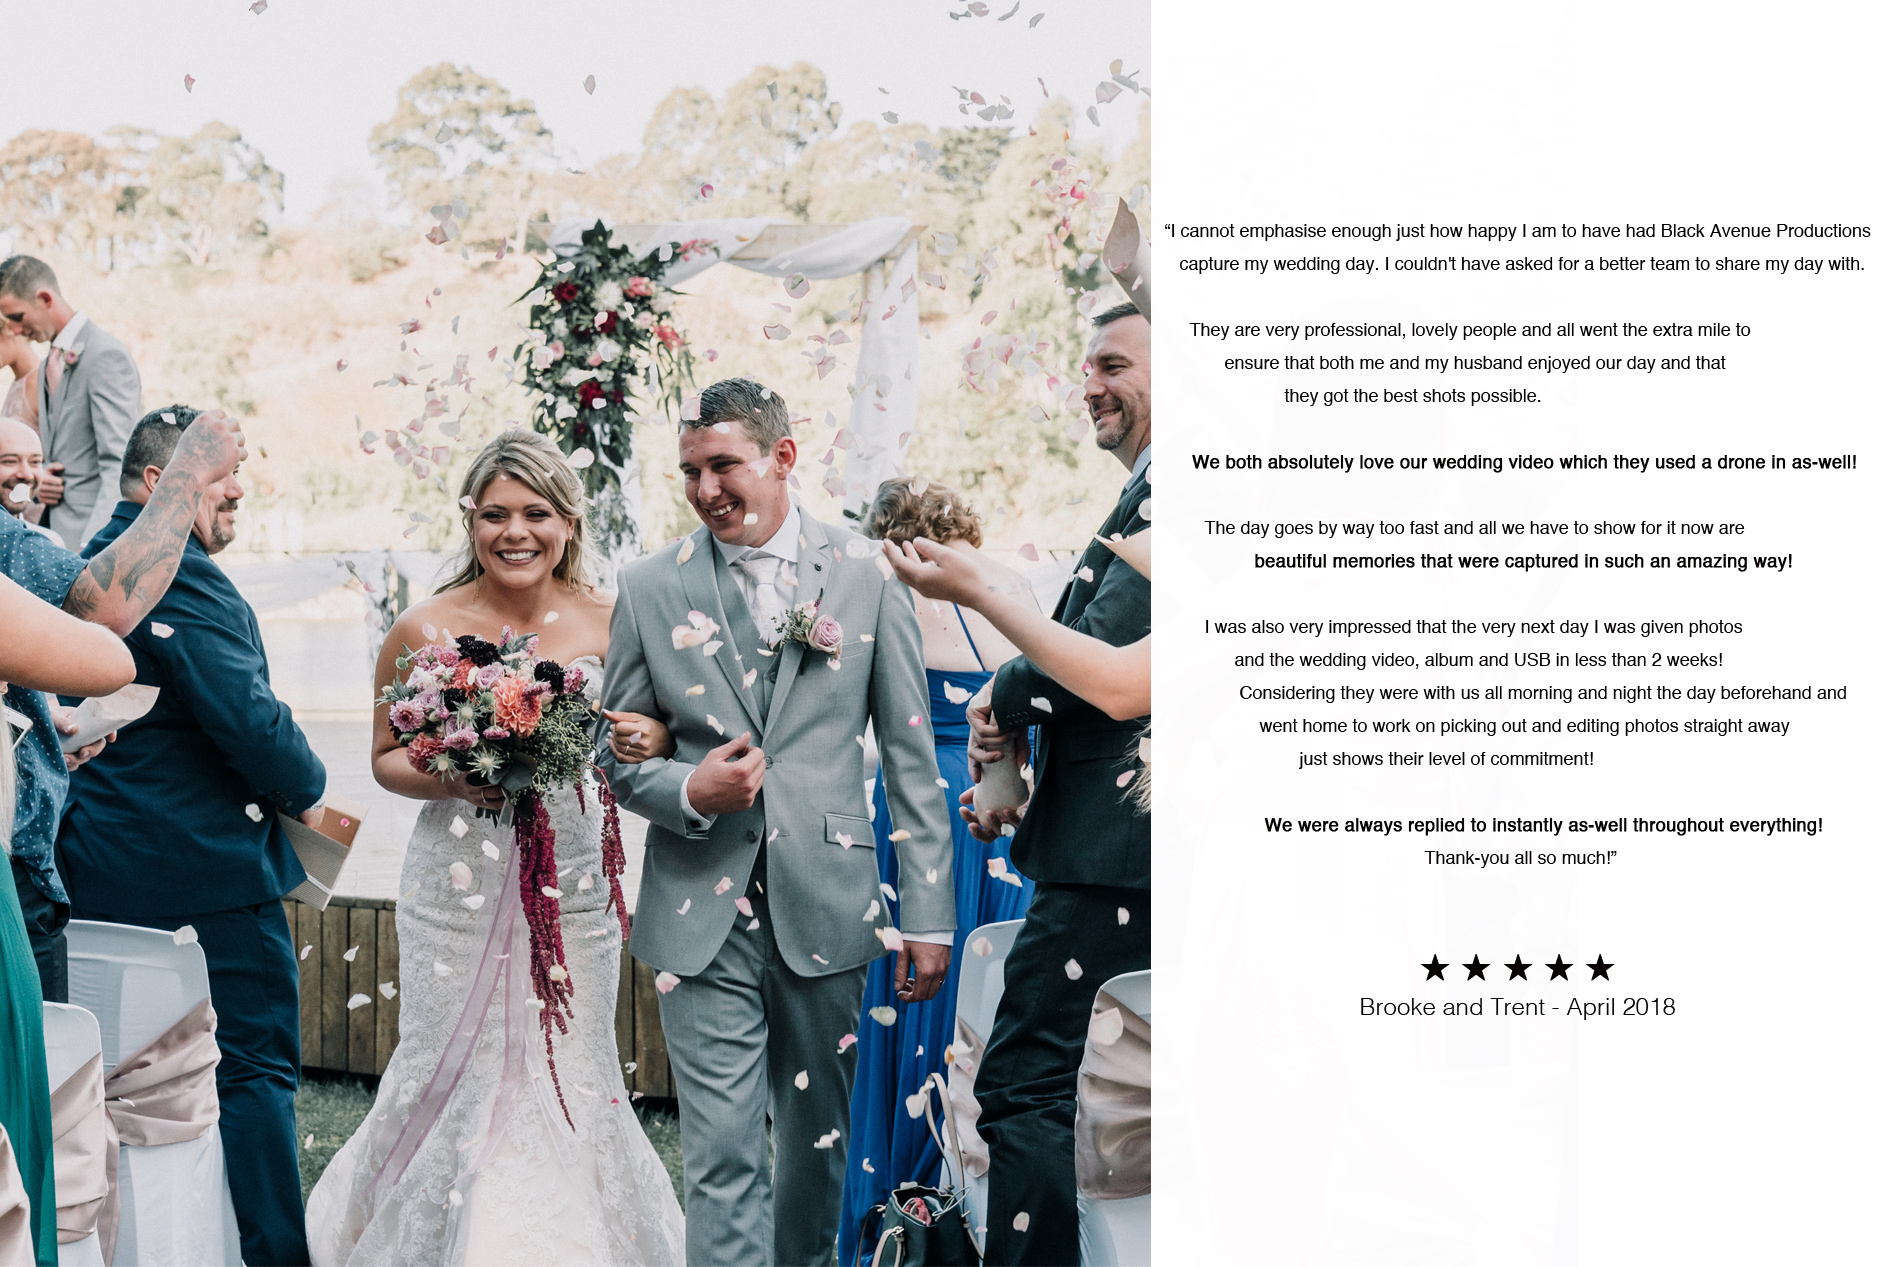 Melbourne couple highly recommended their wedding photography and videography service by Black Avenue Productions